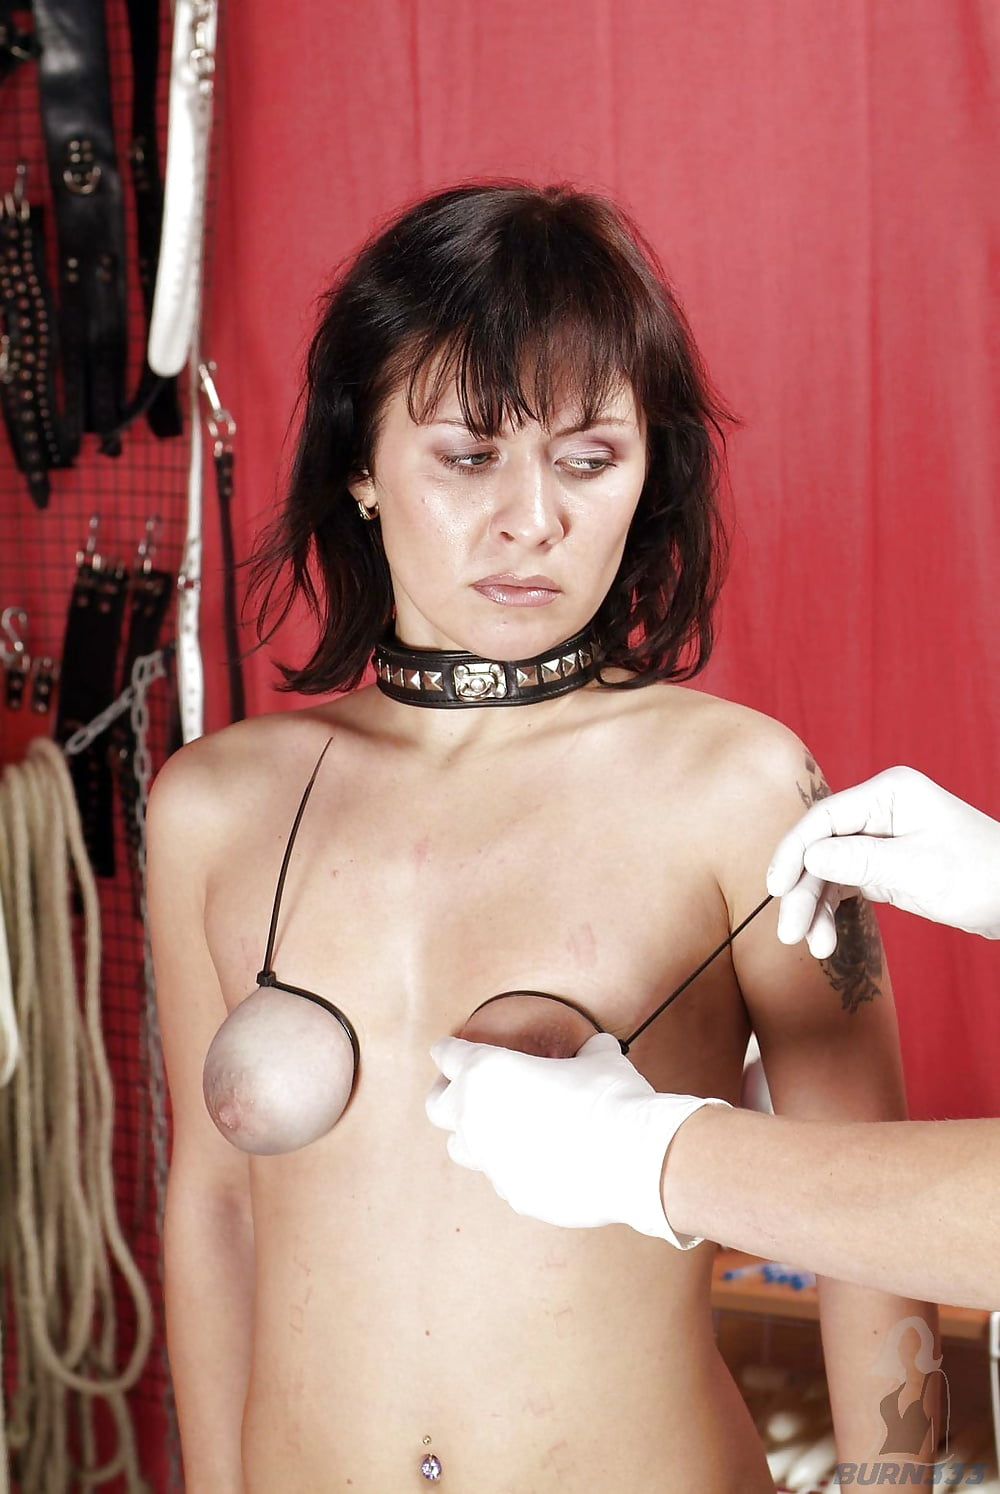 Tit nipple torture pictures